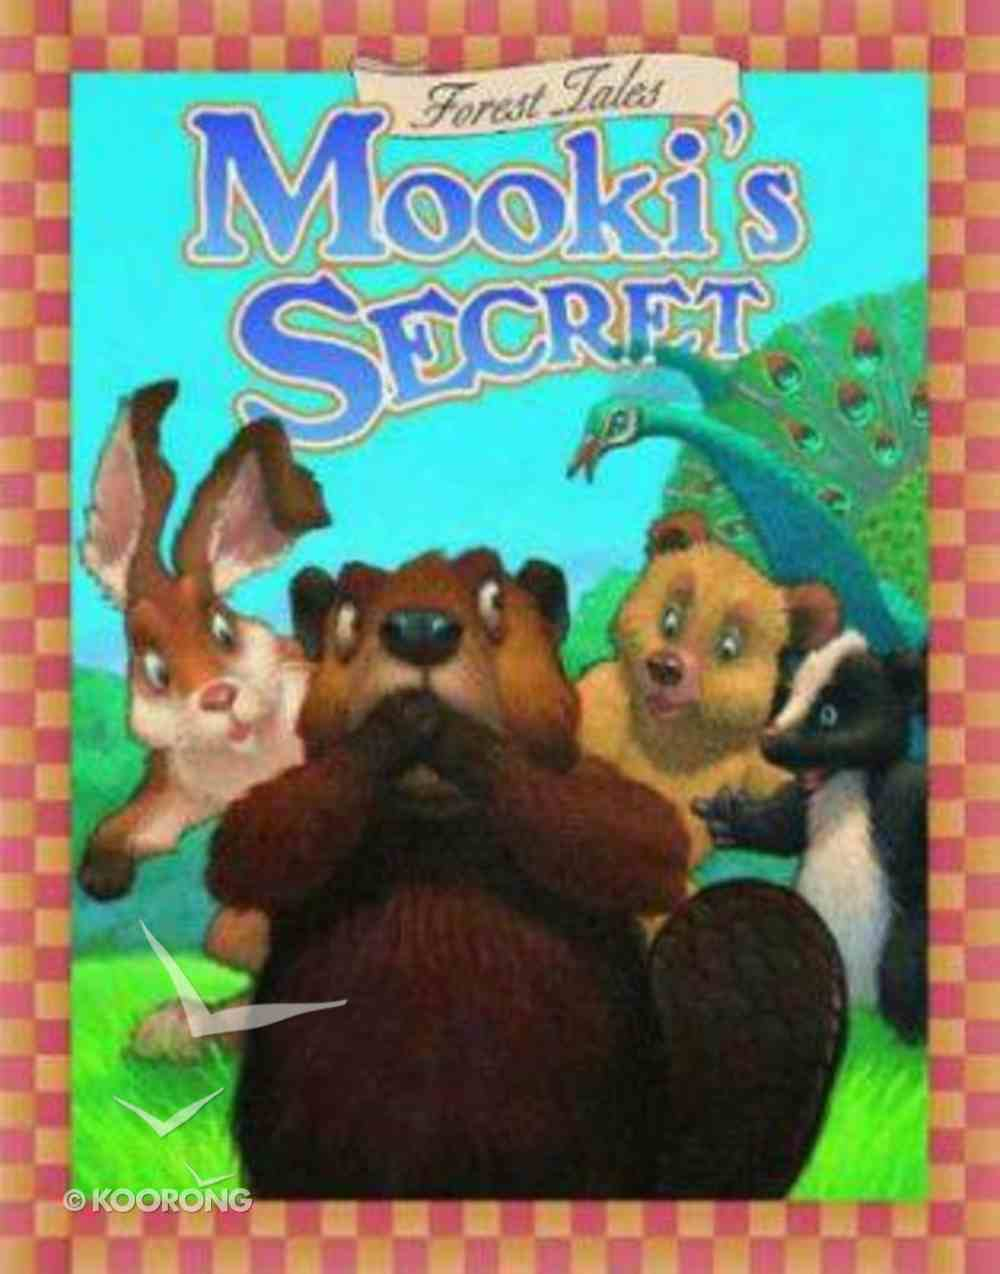 Forest Tales: Mooki's Secret Hardback